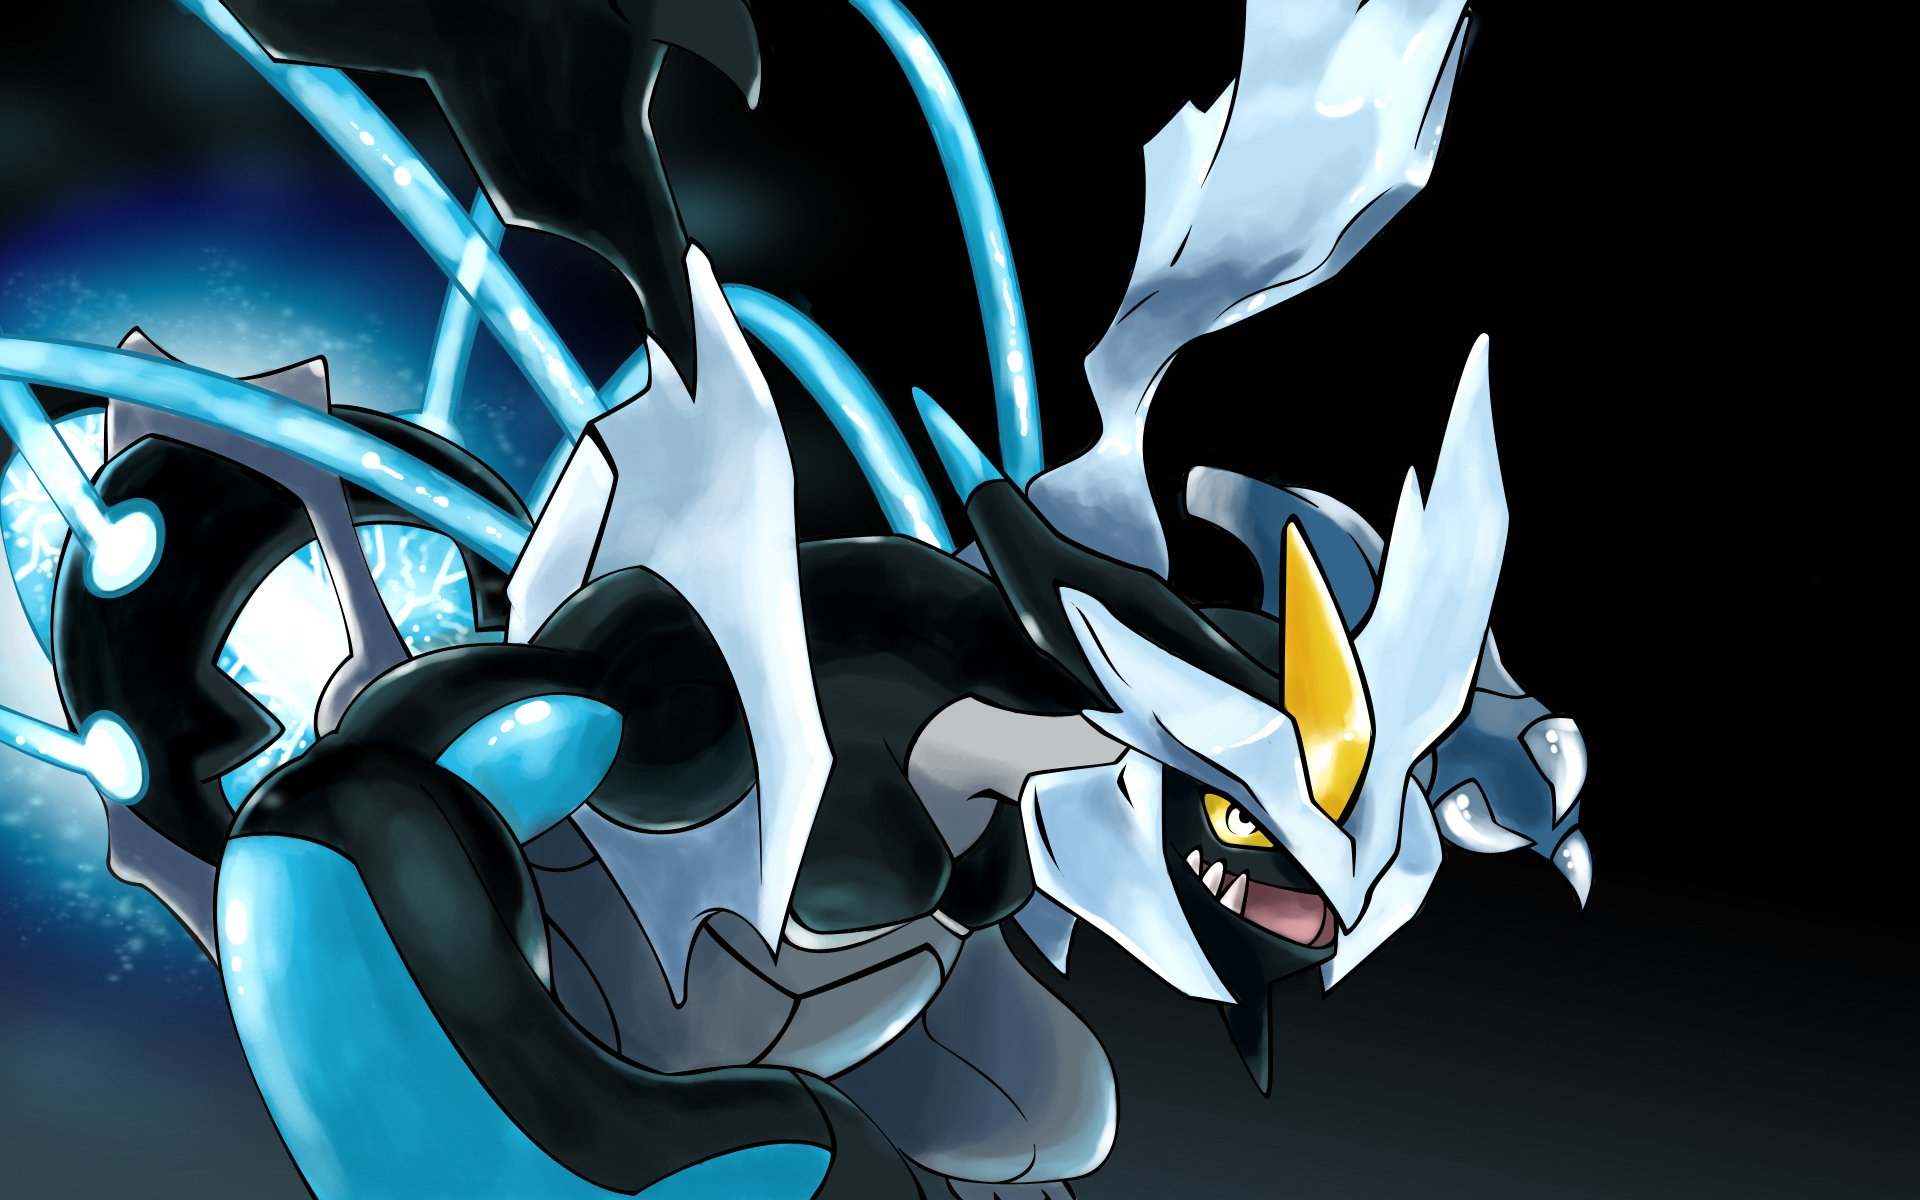 Anime - Pokémon  Kyurem (Pokemon) Wallpaper